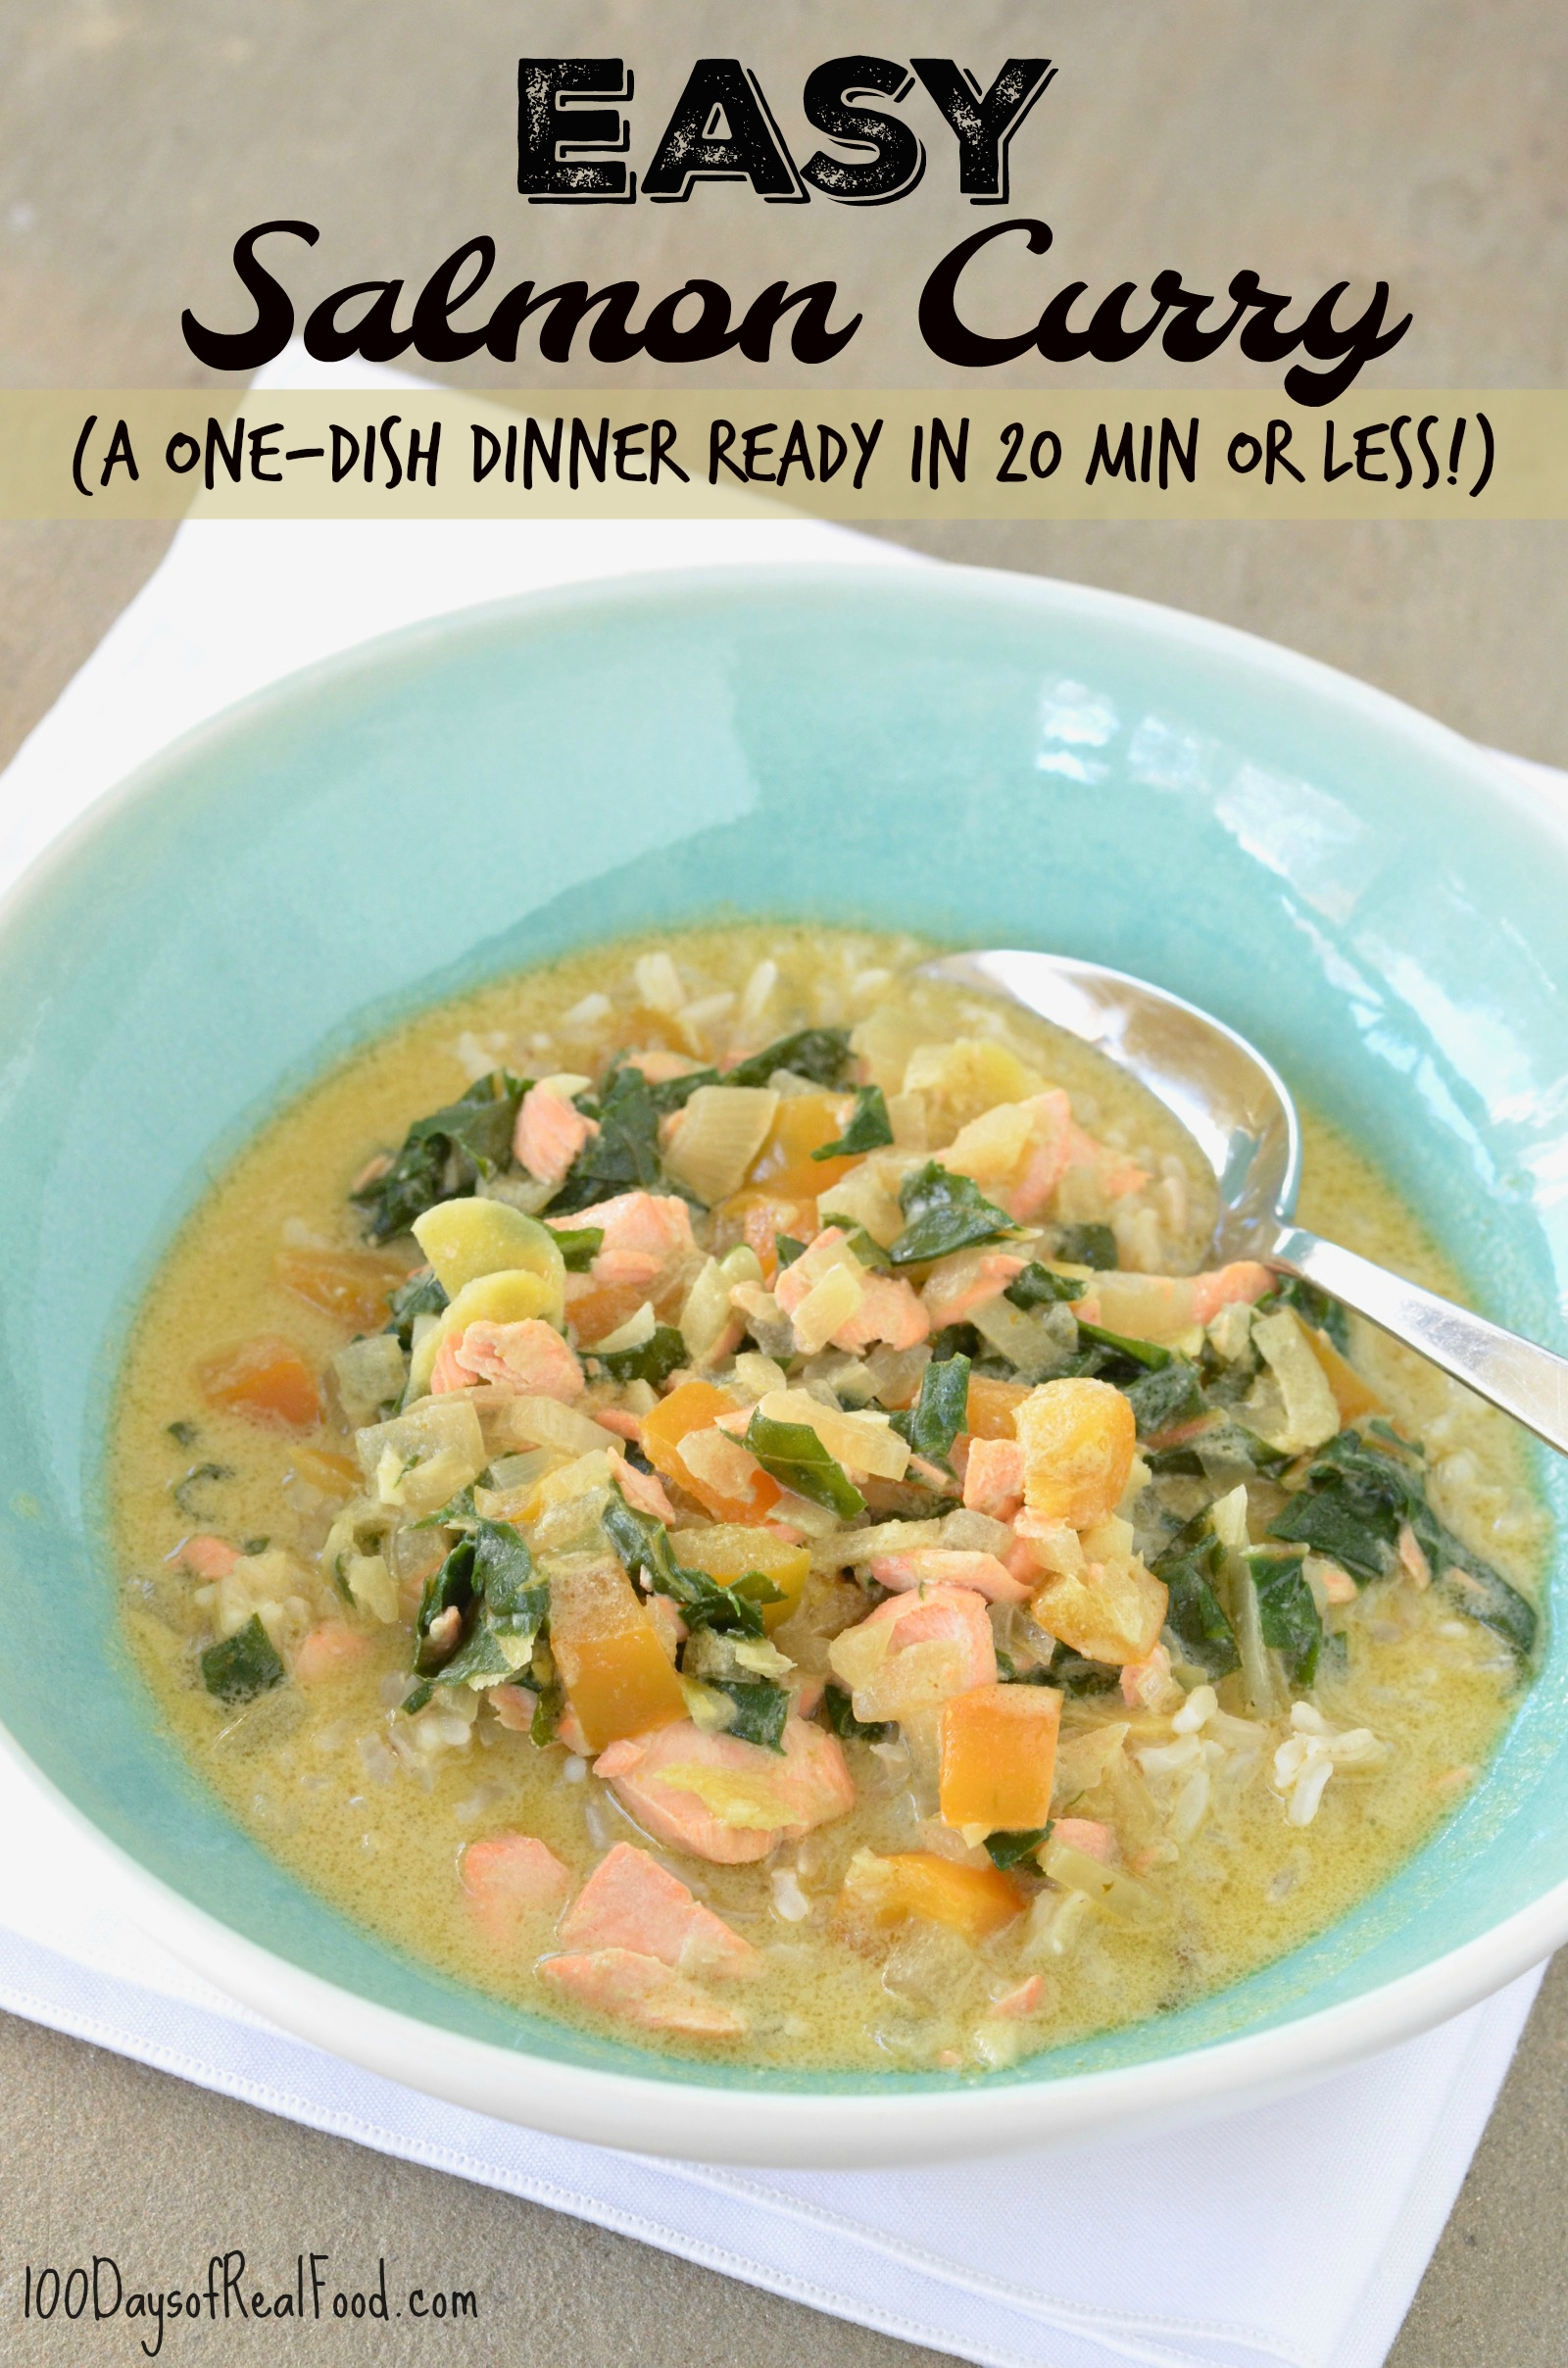 Easy Salmon Curry on 100 Days of Real Food